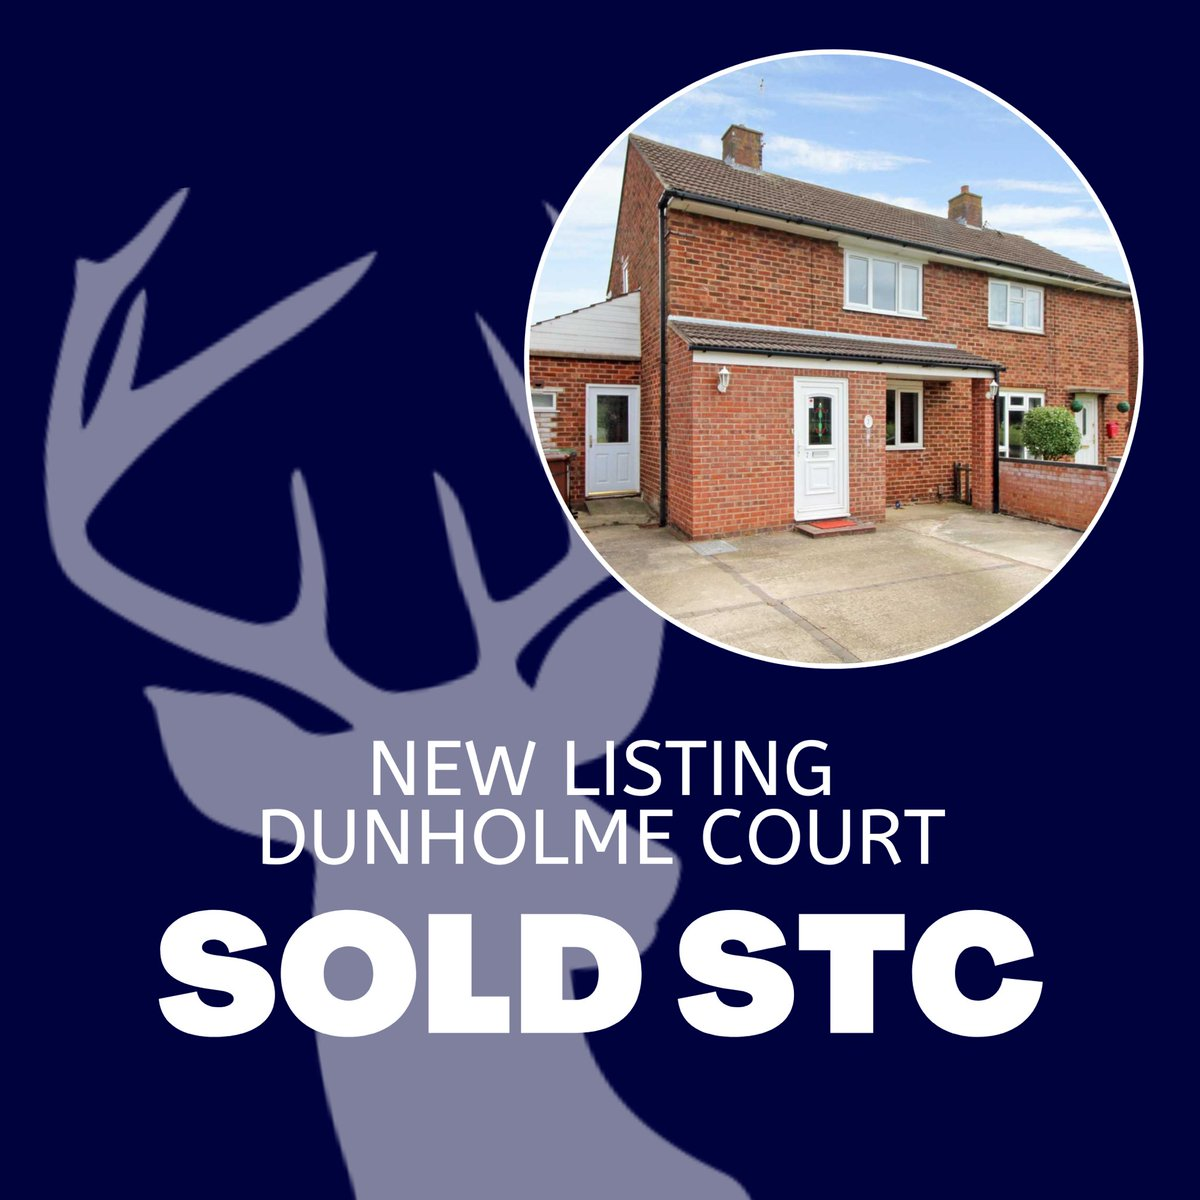 A great day in the office with two new sales agreed in #CherryWillingham and #Ermine #Lincoln  #sold #property #result https://t.co/l8Ind7roRl